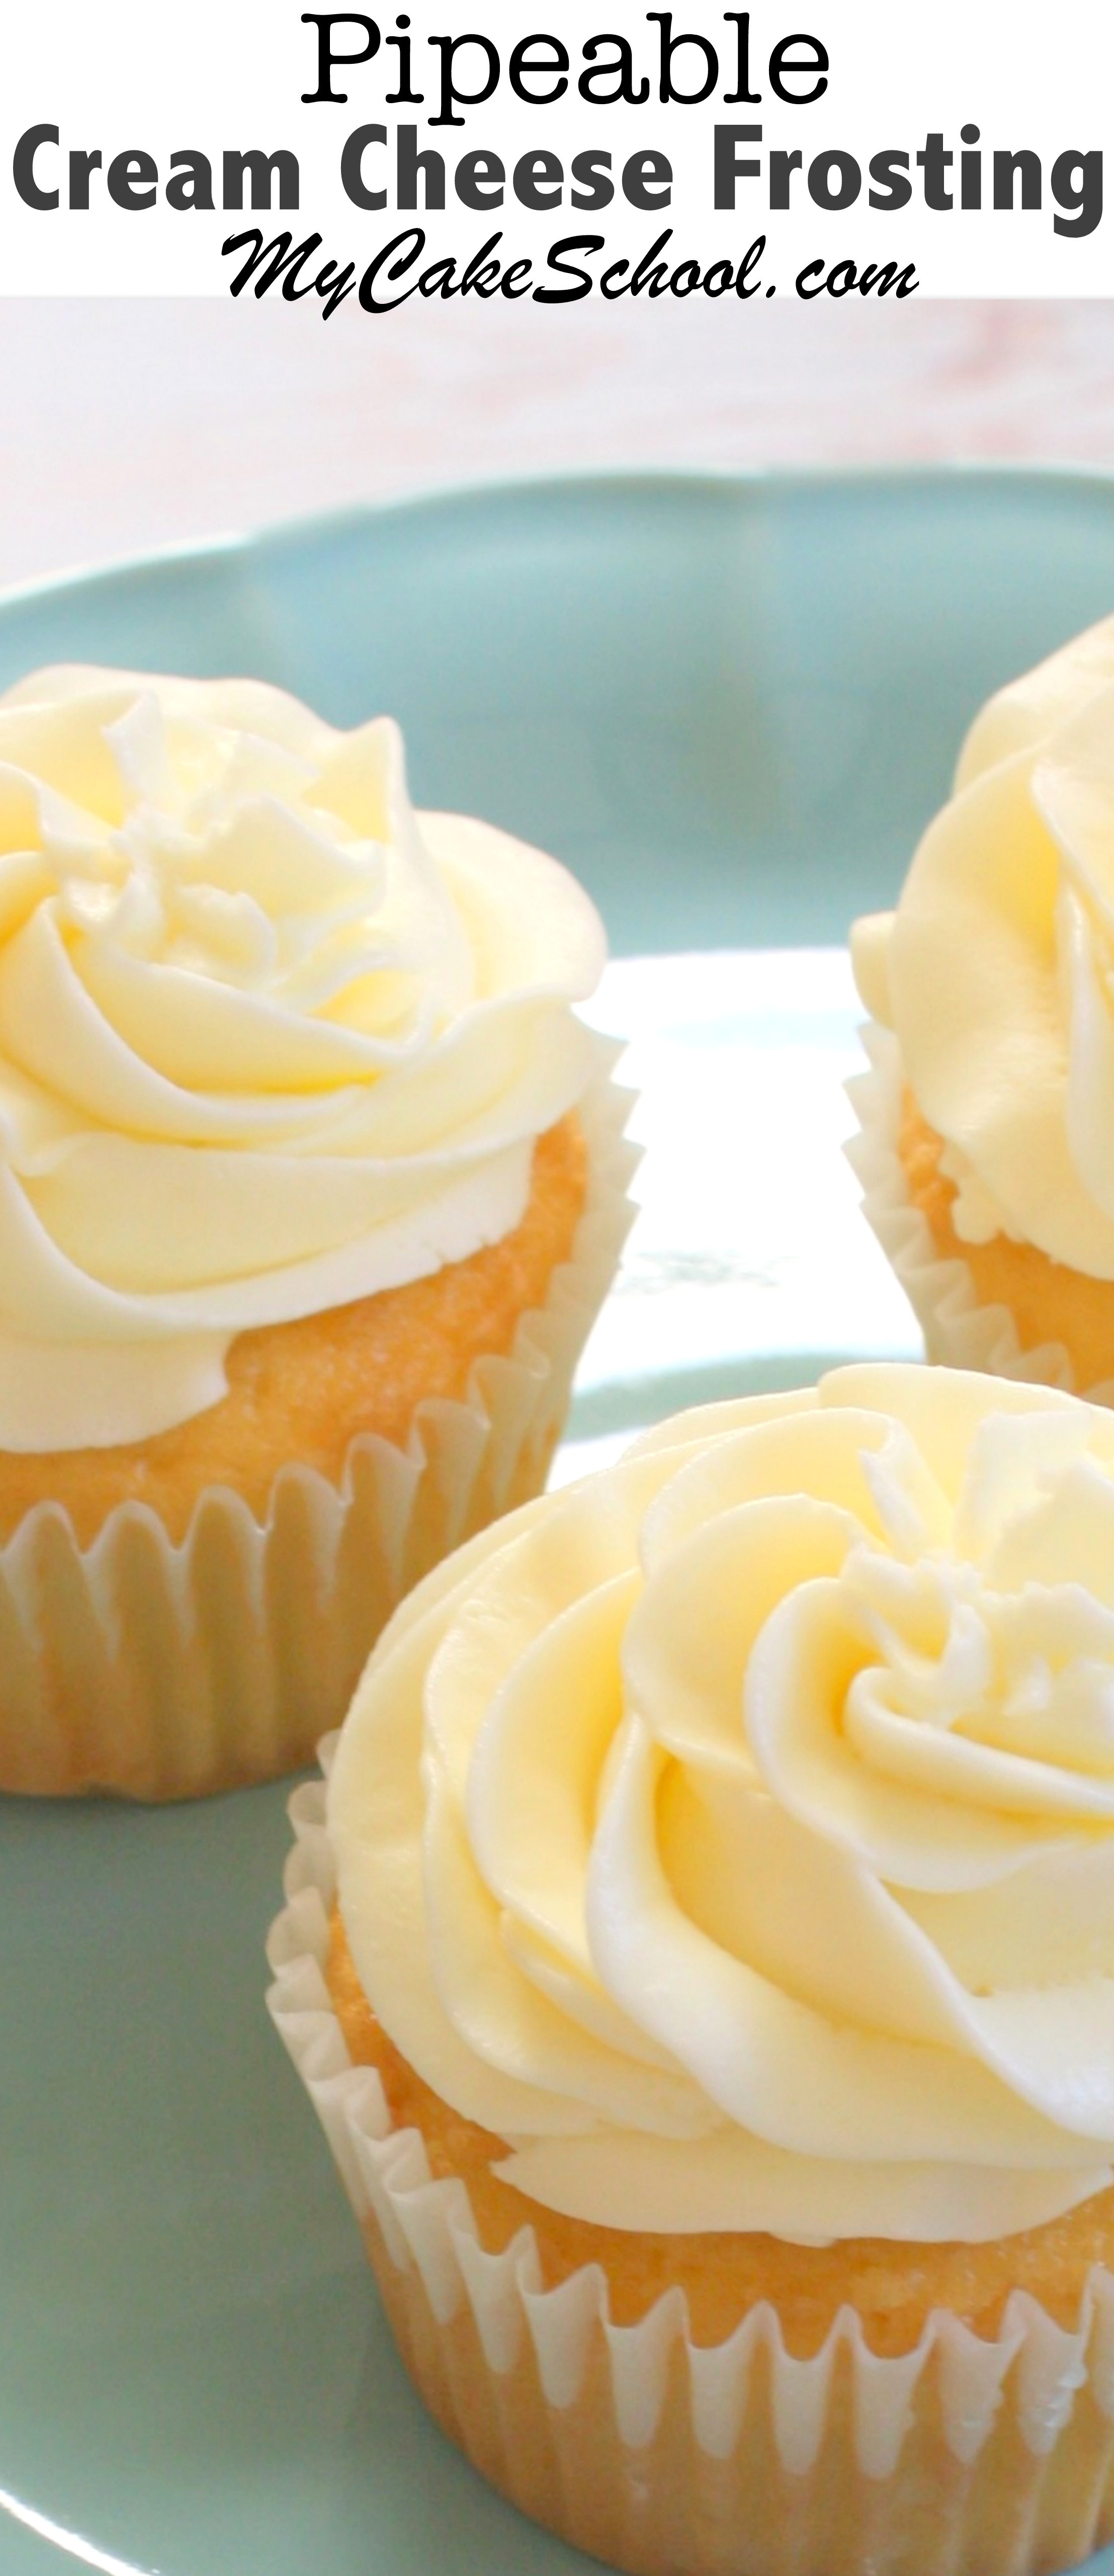 Cake Frosting Recipe  Pipeable Cream Cheese Frosting Delicious